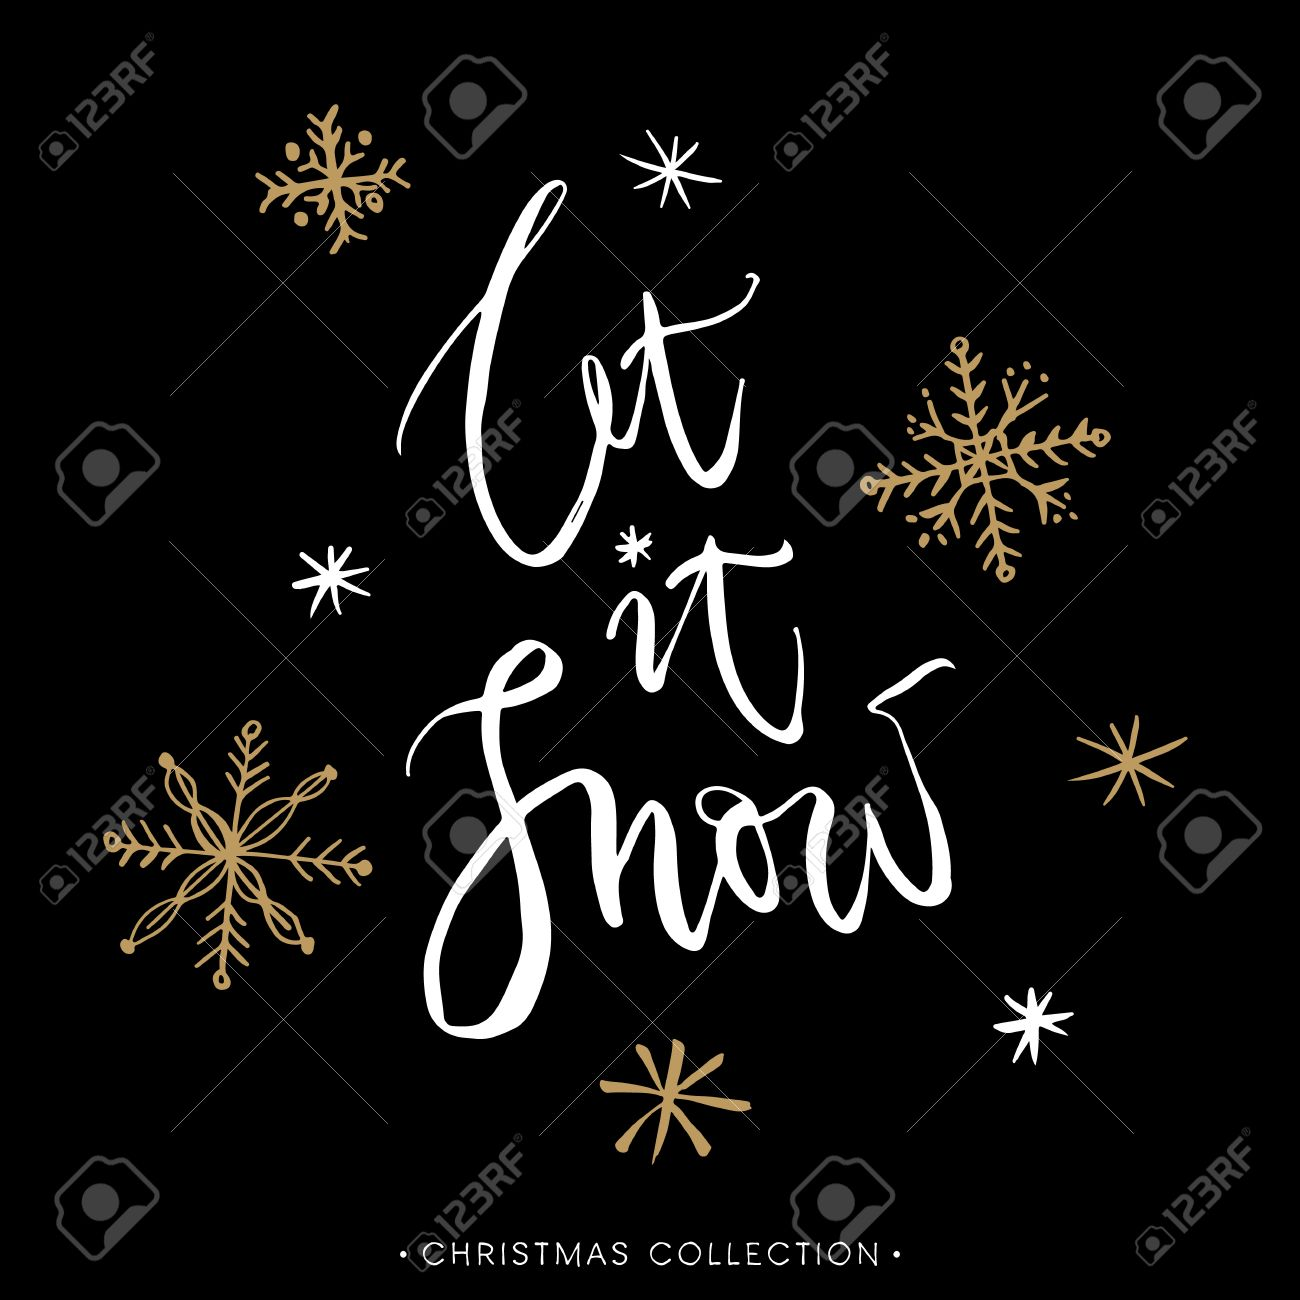 Let it snow! Christmas greeting card with calligraphy. Handwritten modern brush lettering. Hand drawn design elements. - 49114651